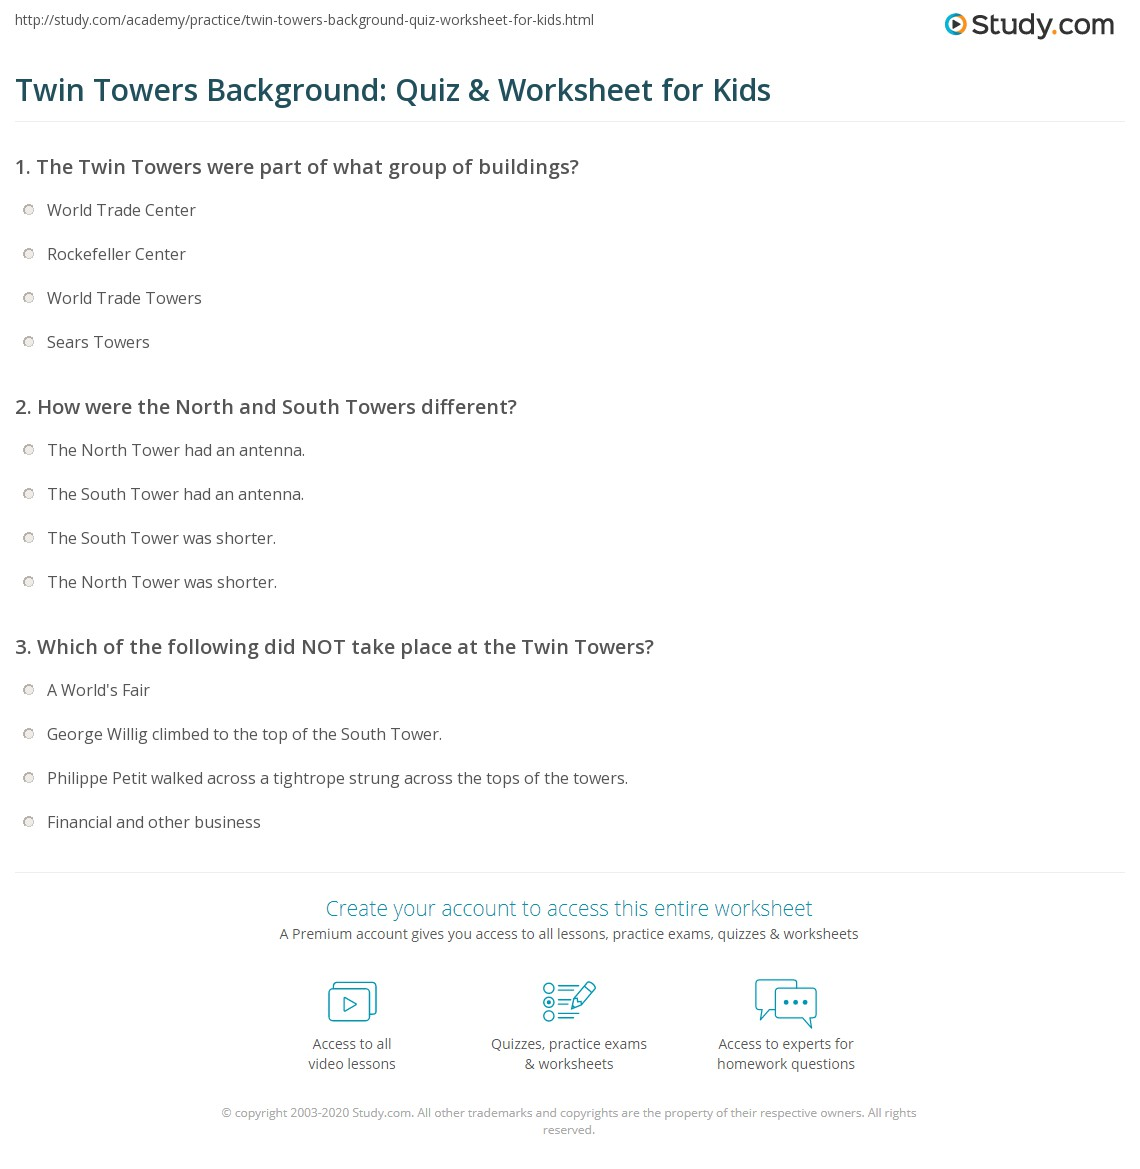 Twin Towers Background: Quiz & Worksheet For Kids